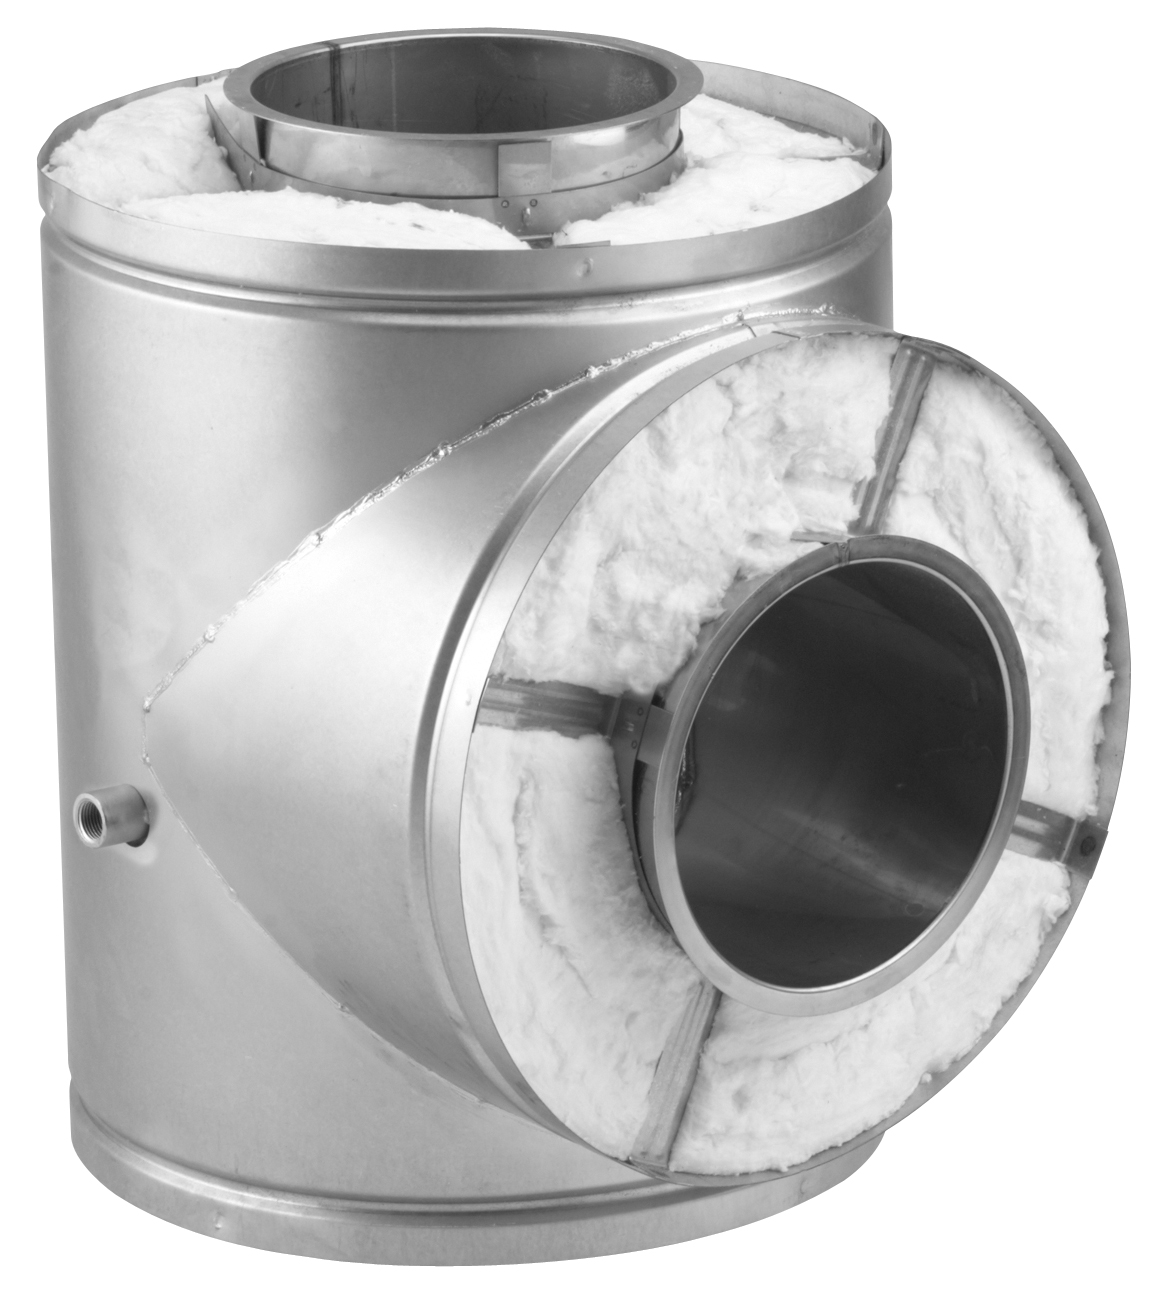 Nts Nozzle Tee Section Ampco